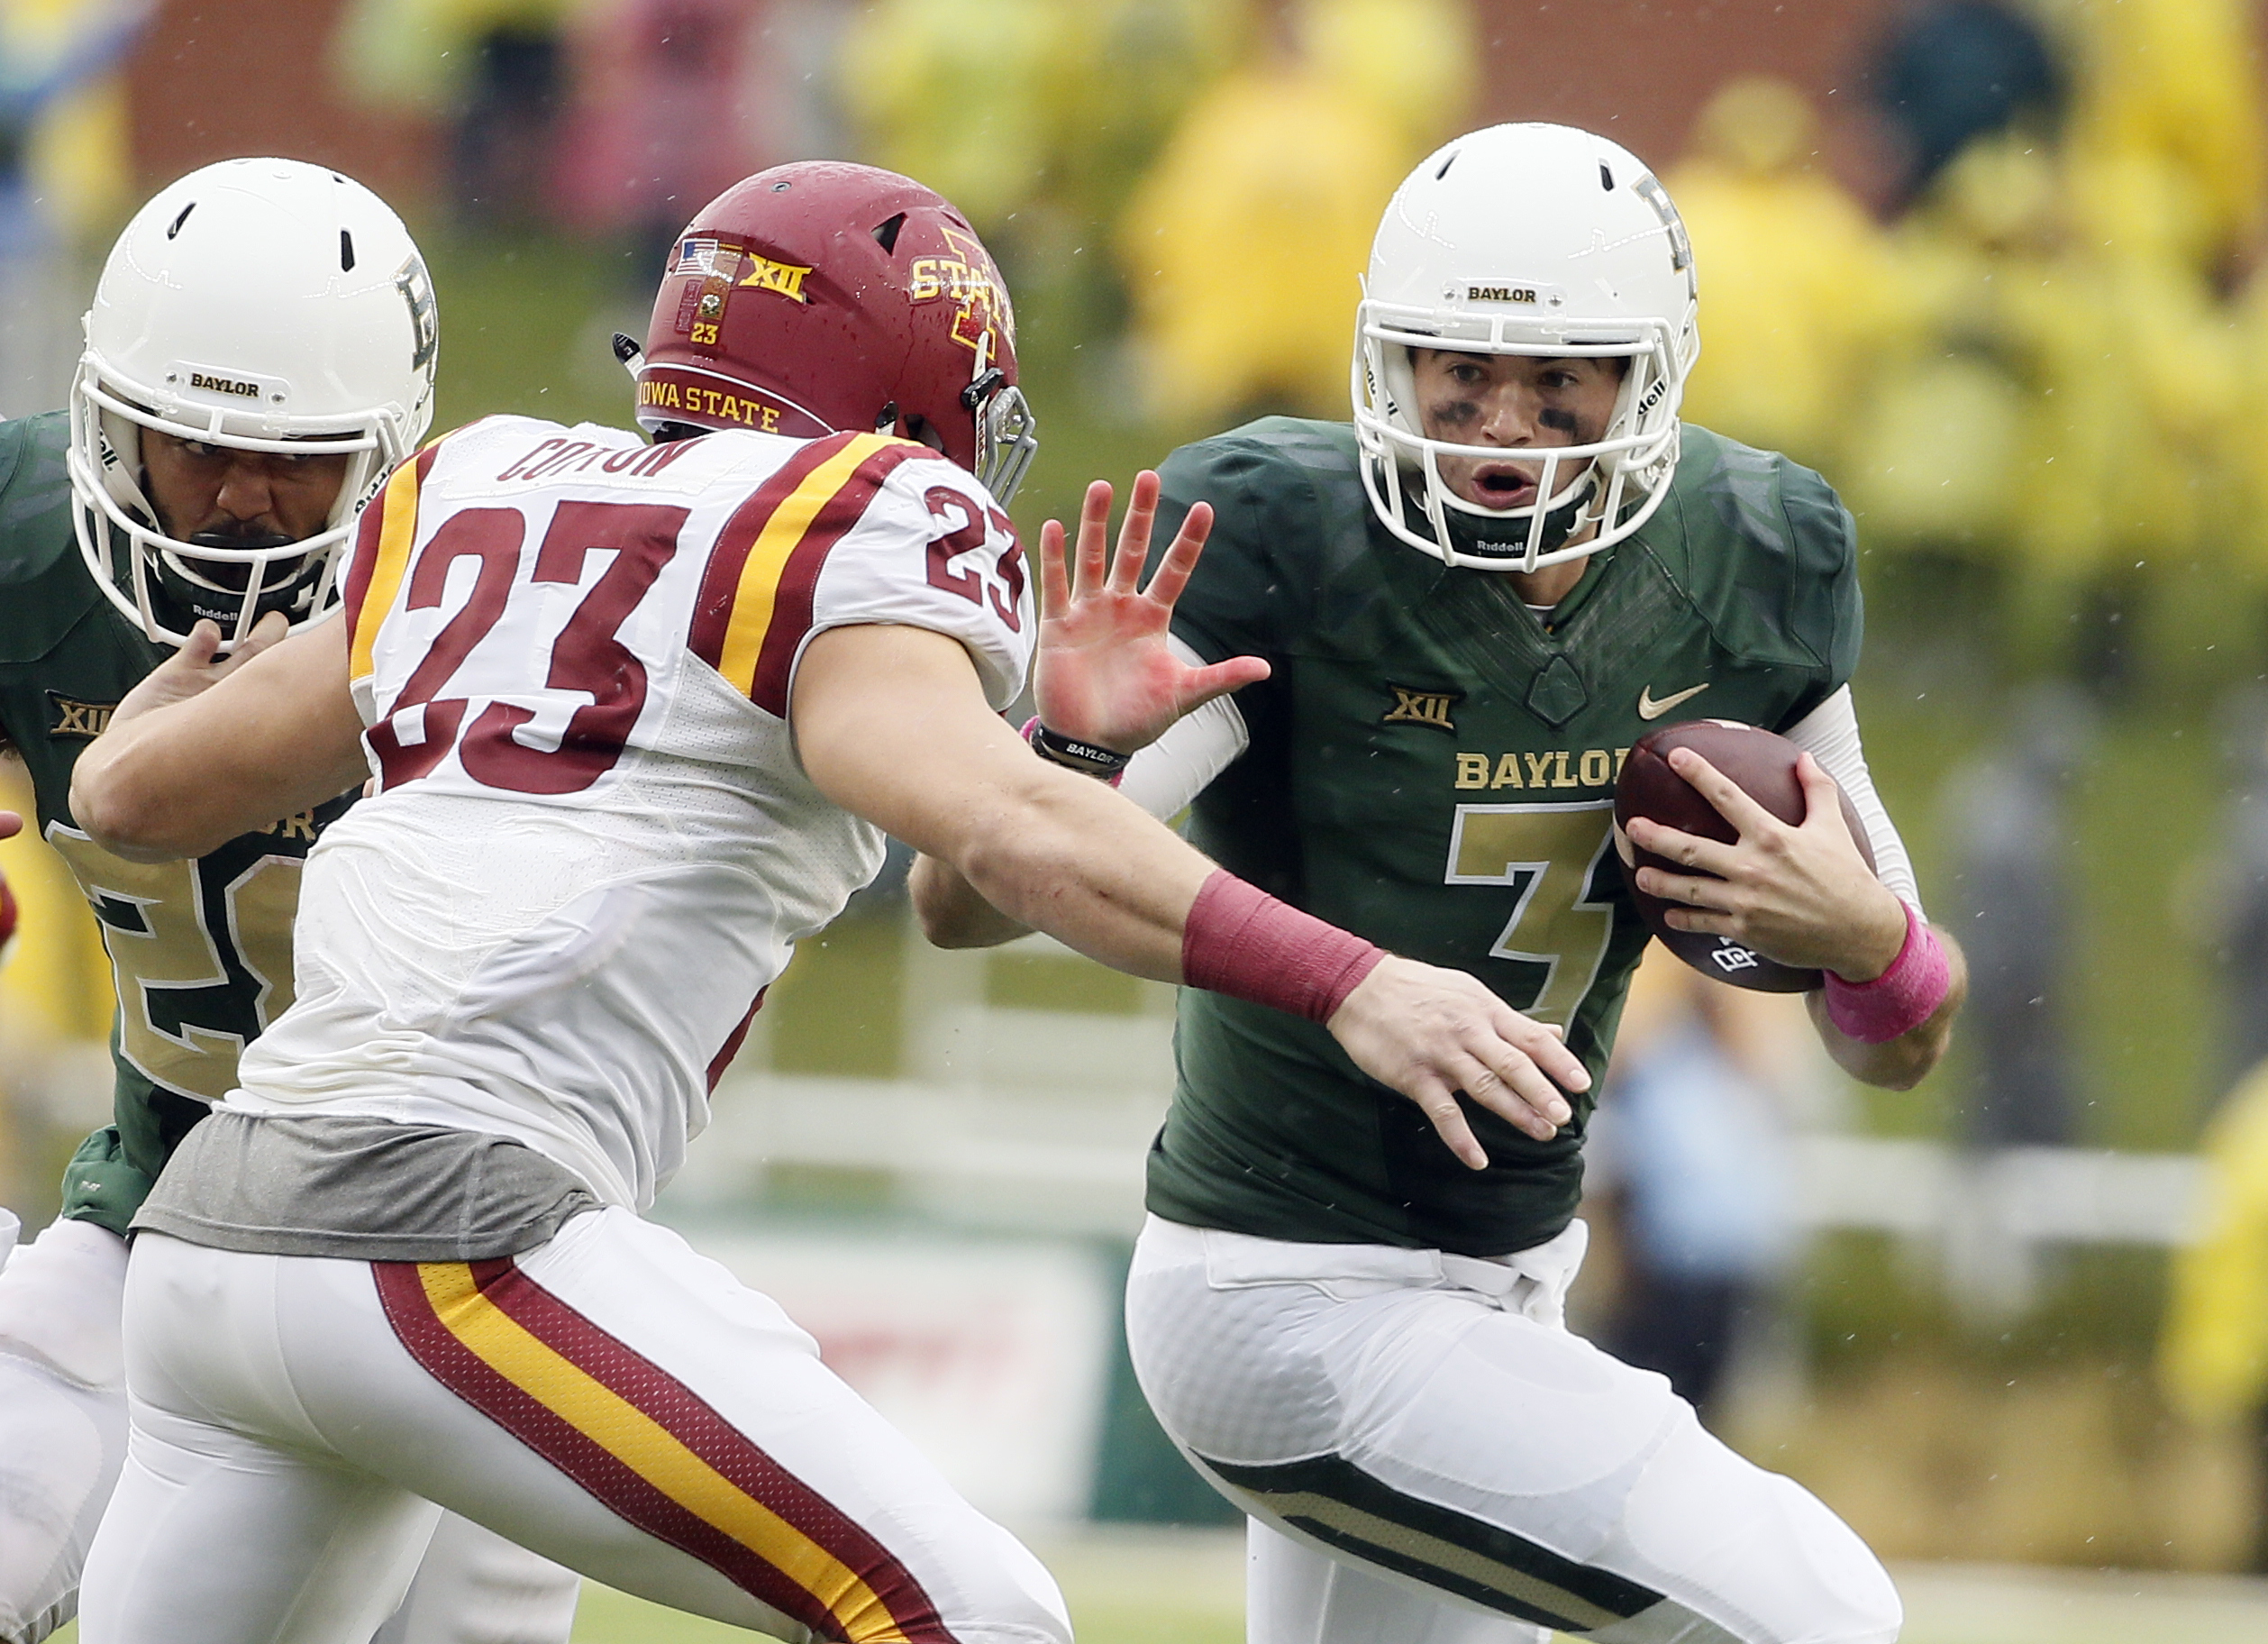 Iowa State defensive back Darian Cotton (23) chases down Baylor quarterback Jarrett Stidham (3) on a running play in the second half of an NCAA college football game Saturday, Oct. 24, 2015, in Waco, Texas. Baylor won 45-27. (AP Photo/Tony Gutierrez)